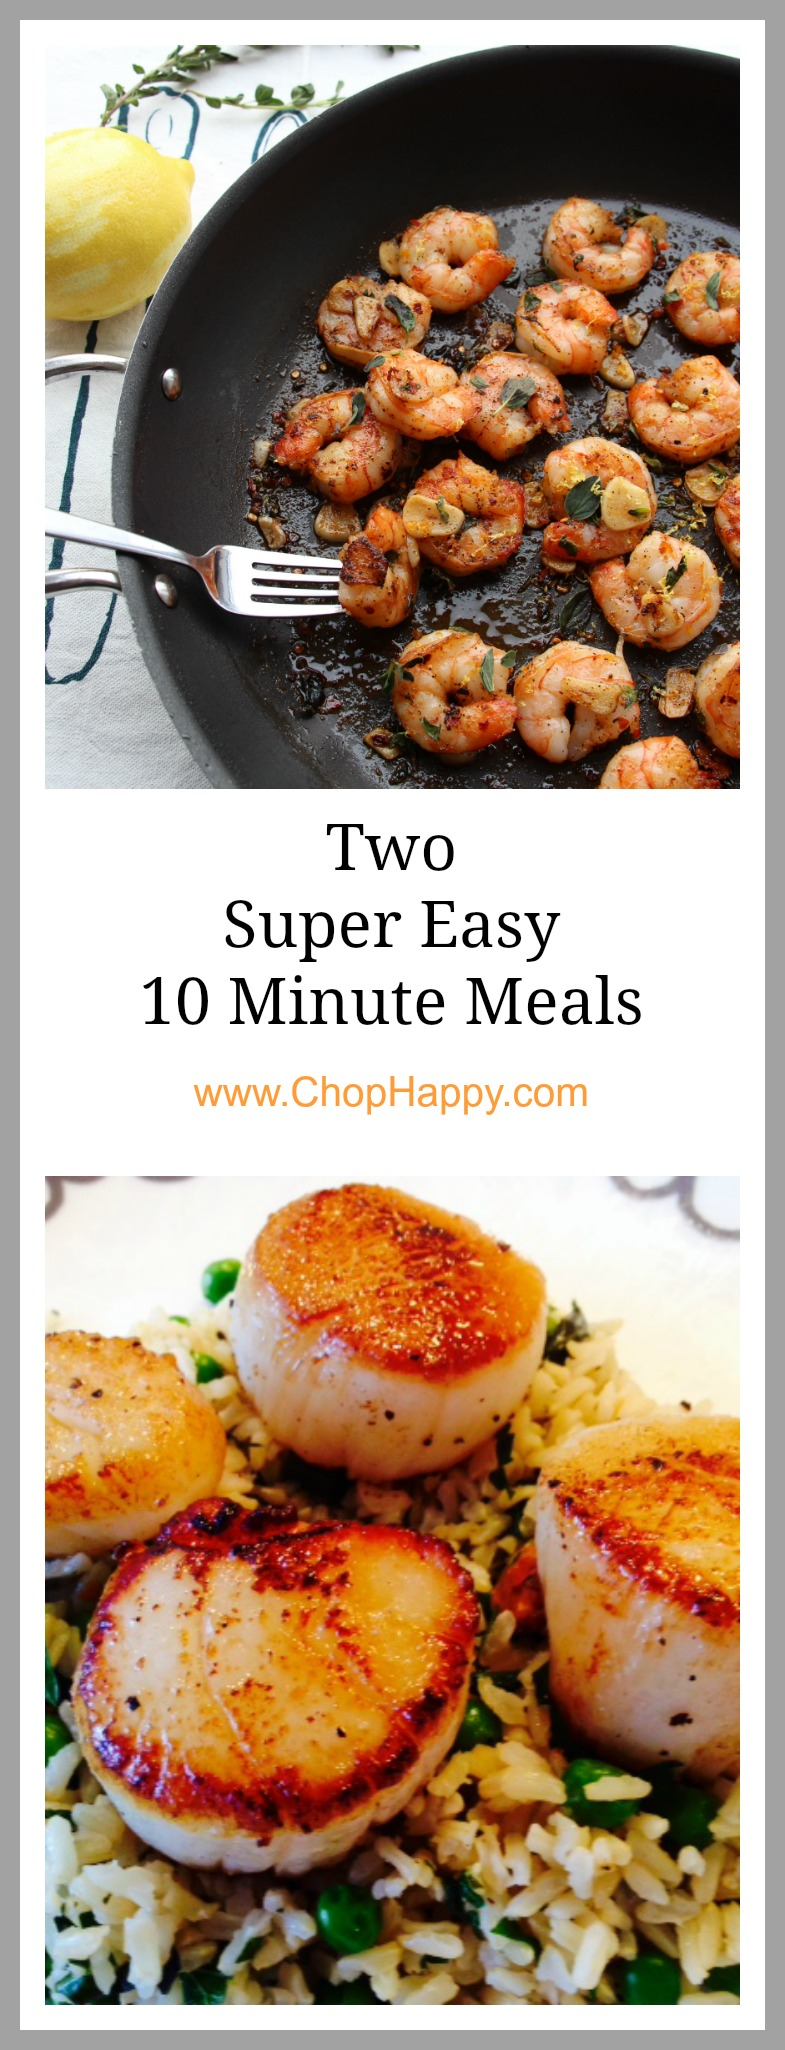 Two Super Easy 10 Minute Meals.. The ultimate busy day recipes. One pan, 10 minutes, and so full of flavor. www.ChopHappy.com